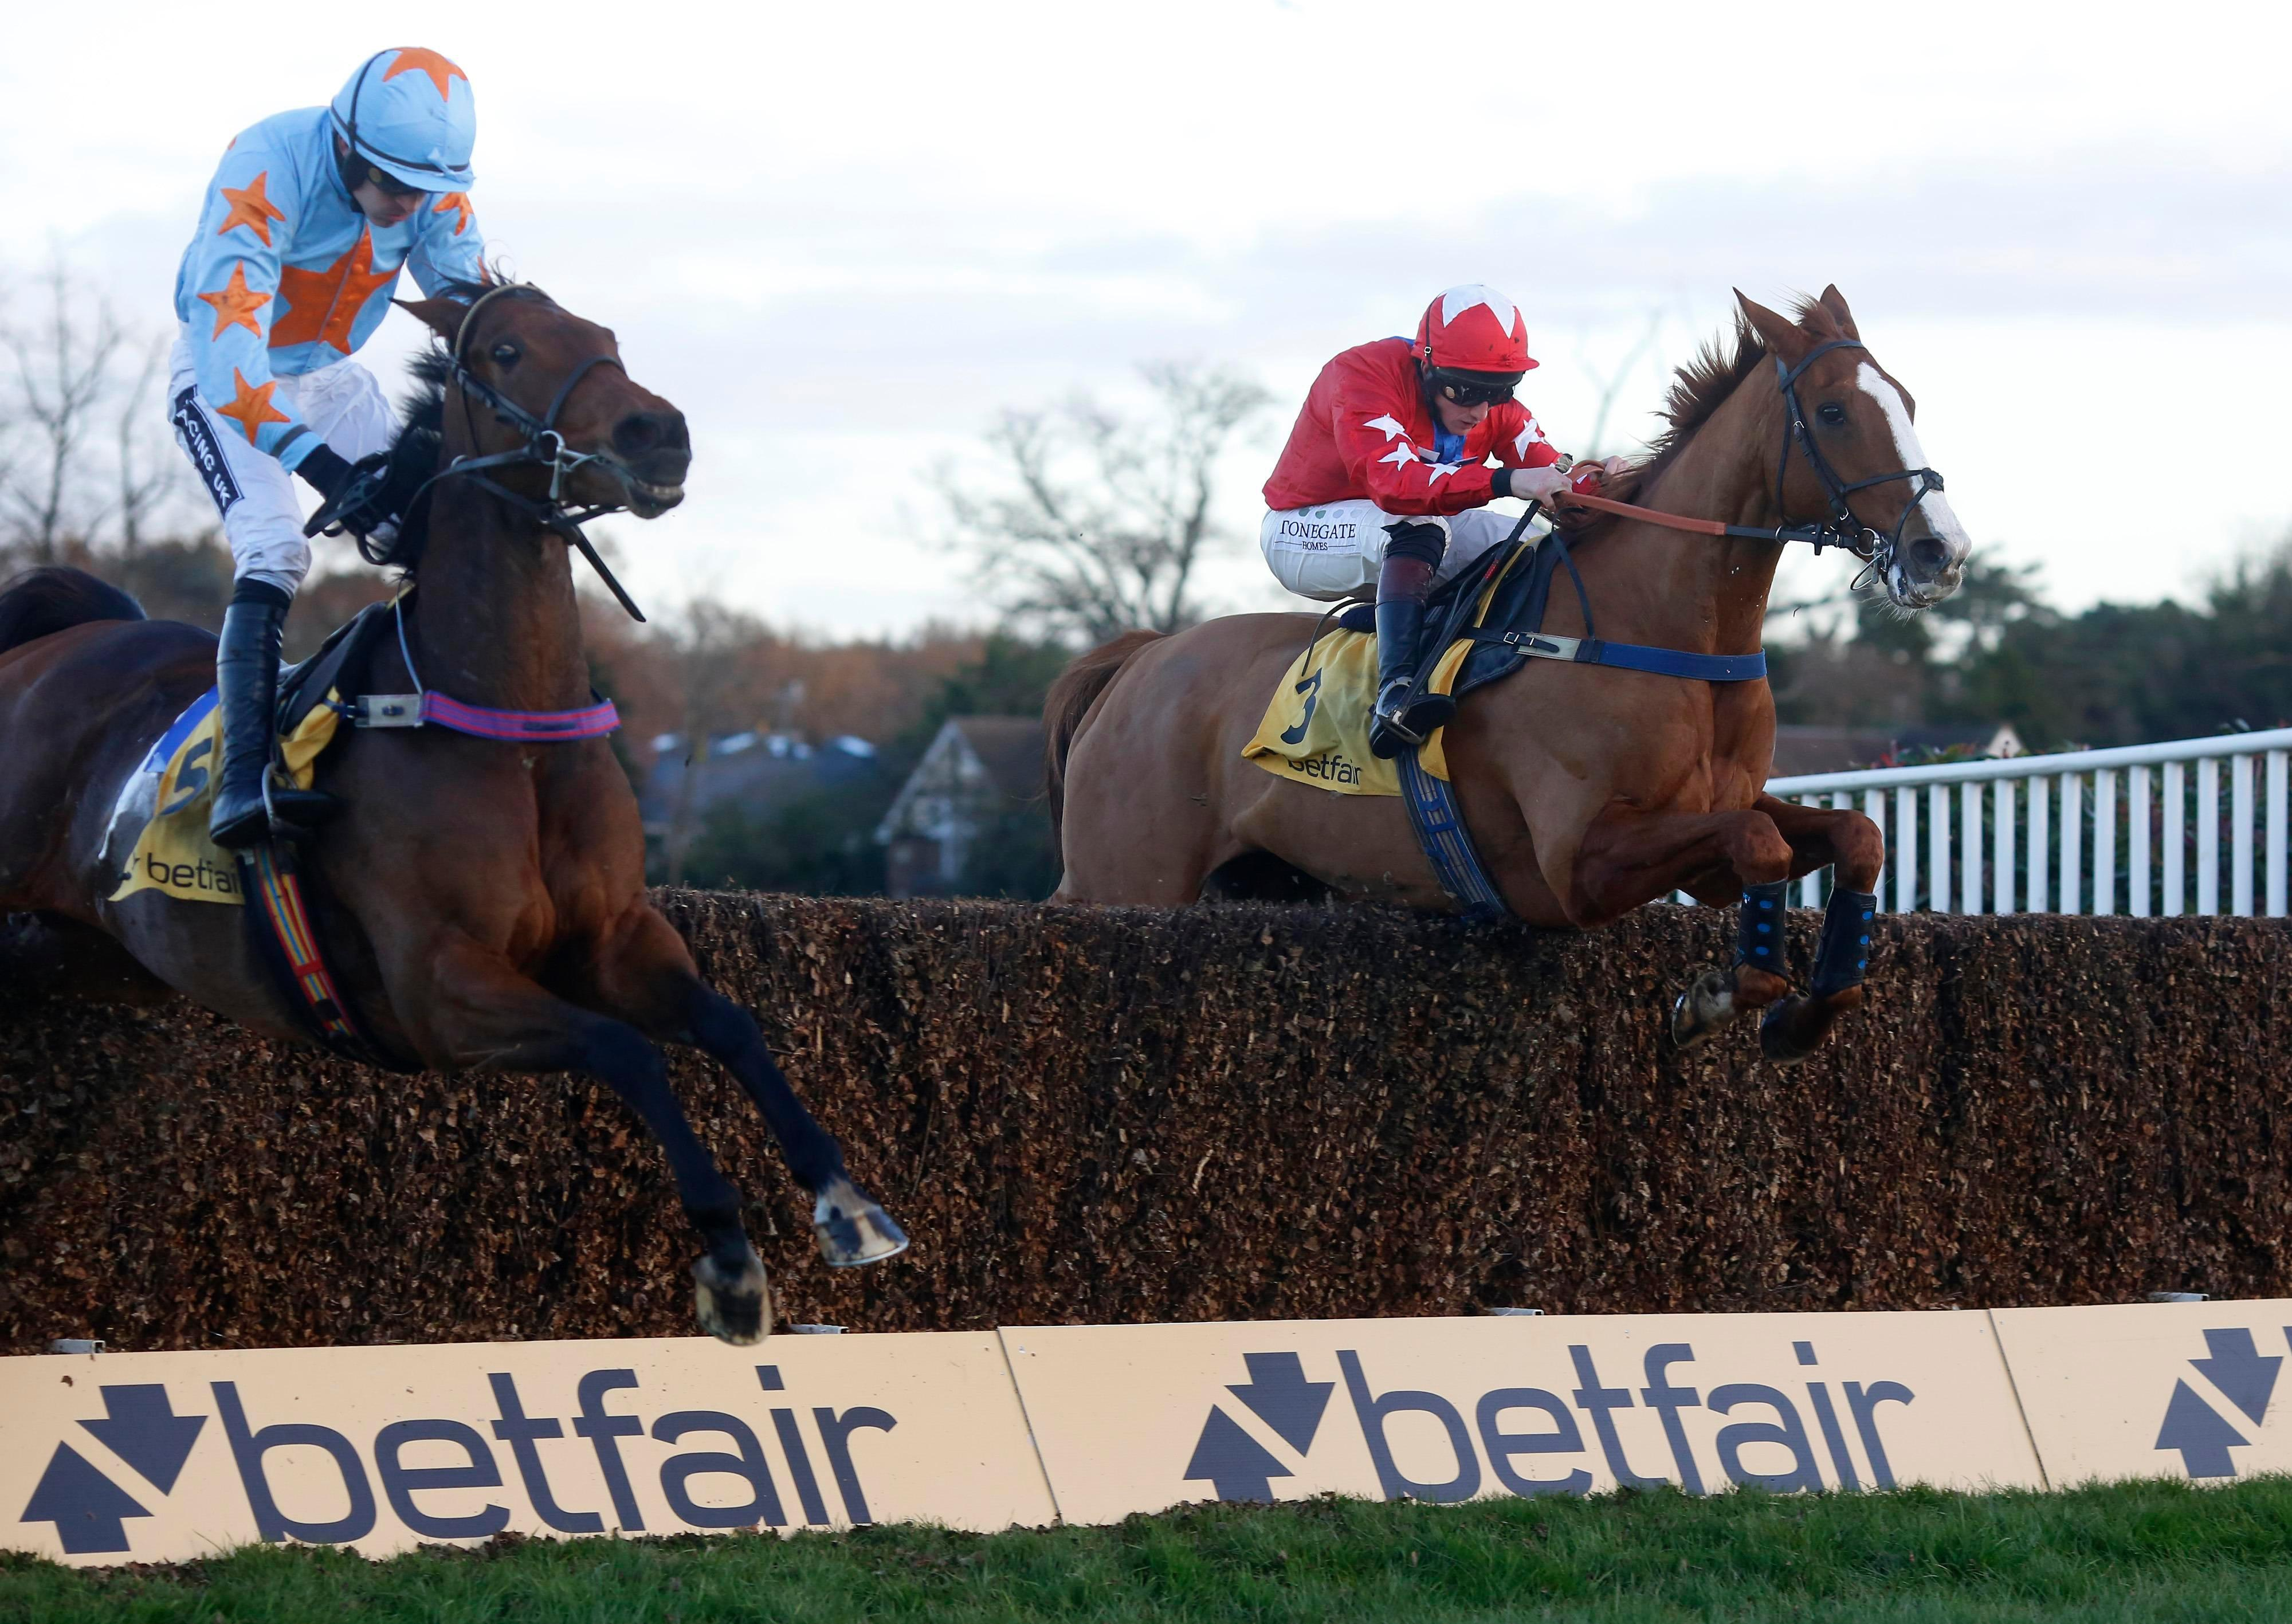 When is the 2018 Tingle Creek, what is the prize money, which horse is the favourite and is there a live stream?